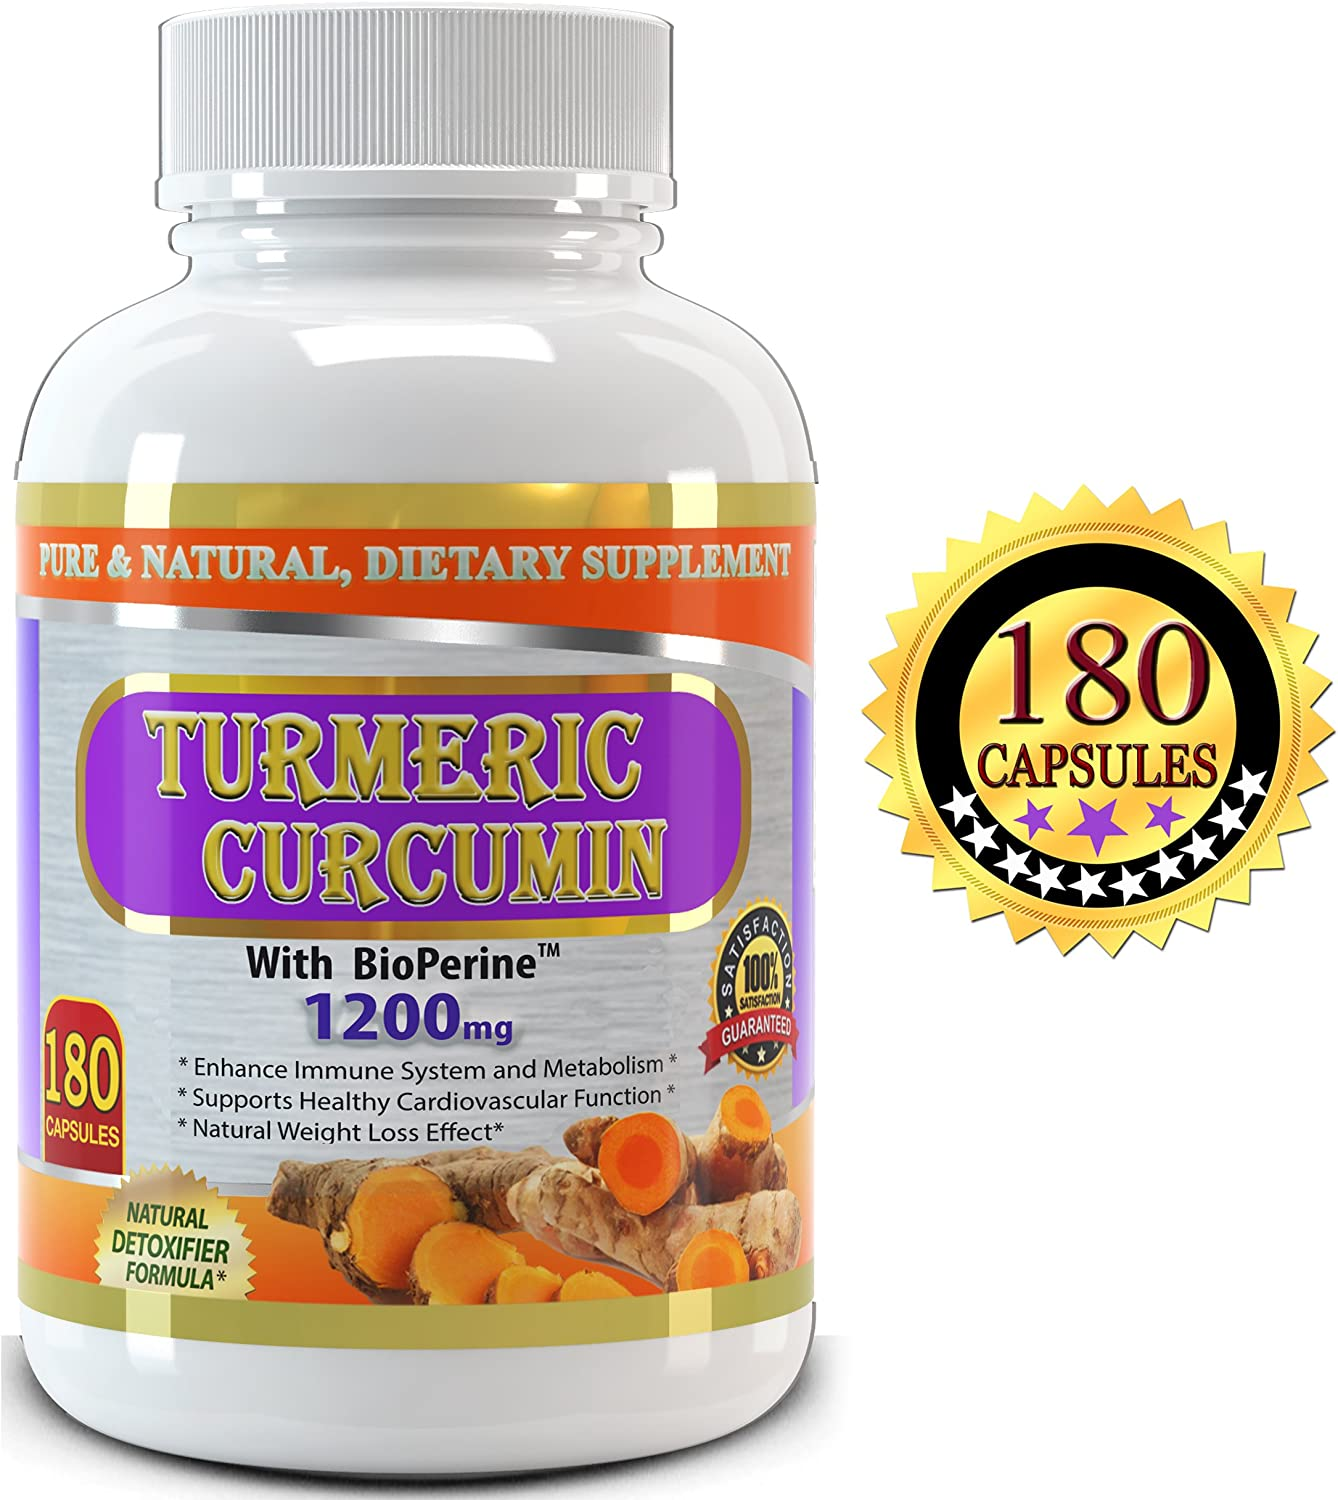 Pure Turmeric Curcumin with Bioperine, 180 Capsules, 1200 mg Serving – 3 Months Supply, Best Value on Market Experience the Benefits of the High Potency Turmeric Curcumin with Black Pepper Extract